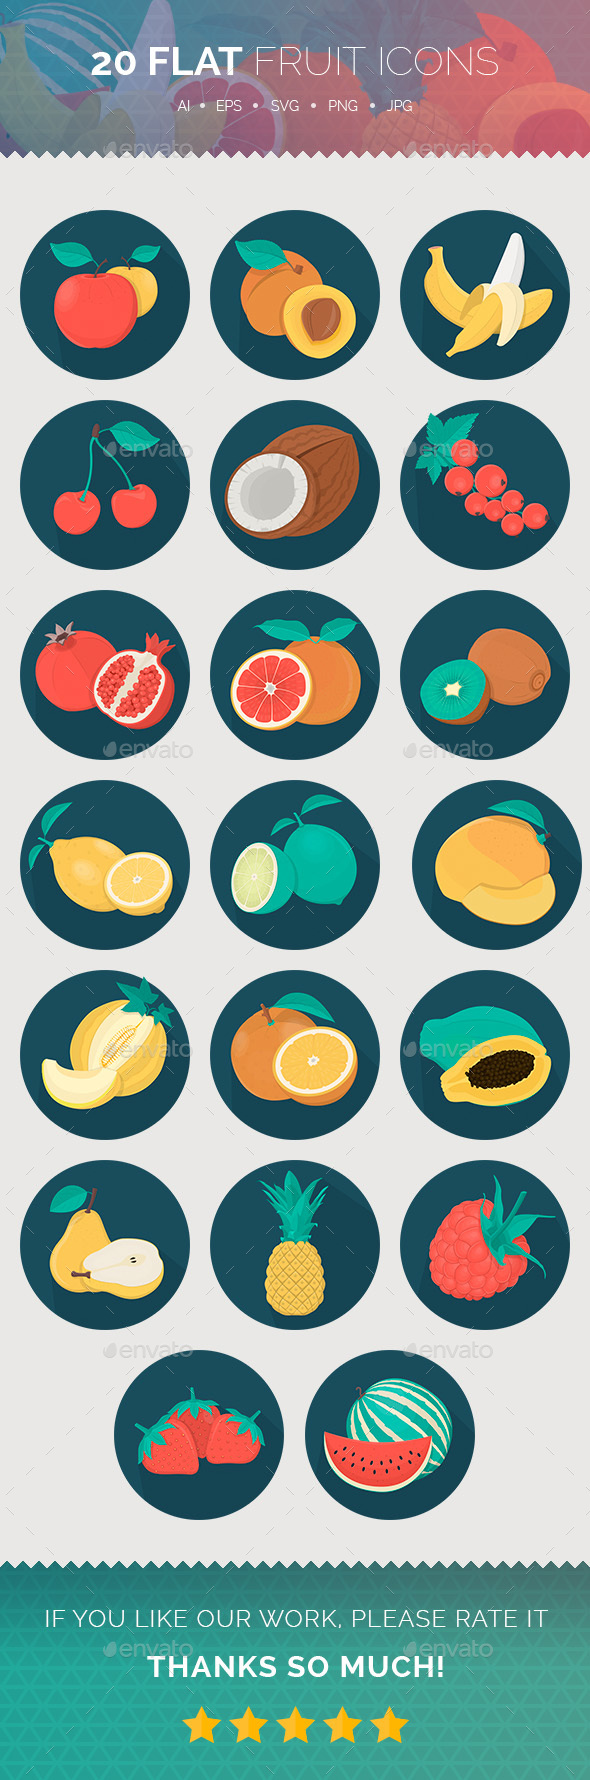 Flat Fruit Icons  - Food Objects